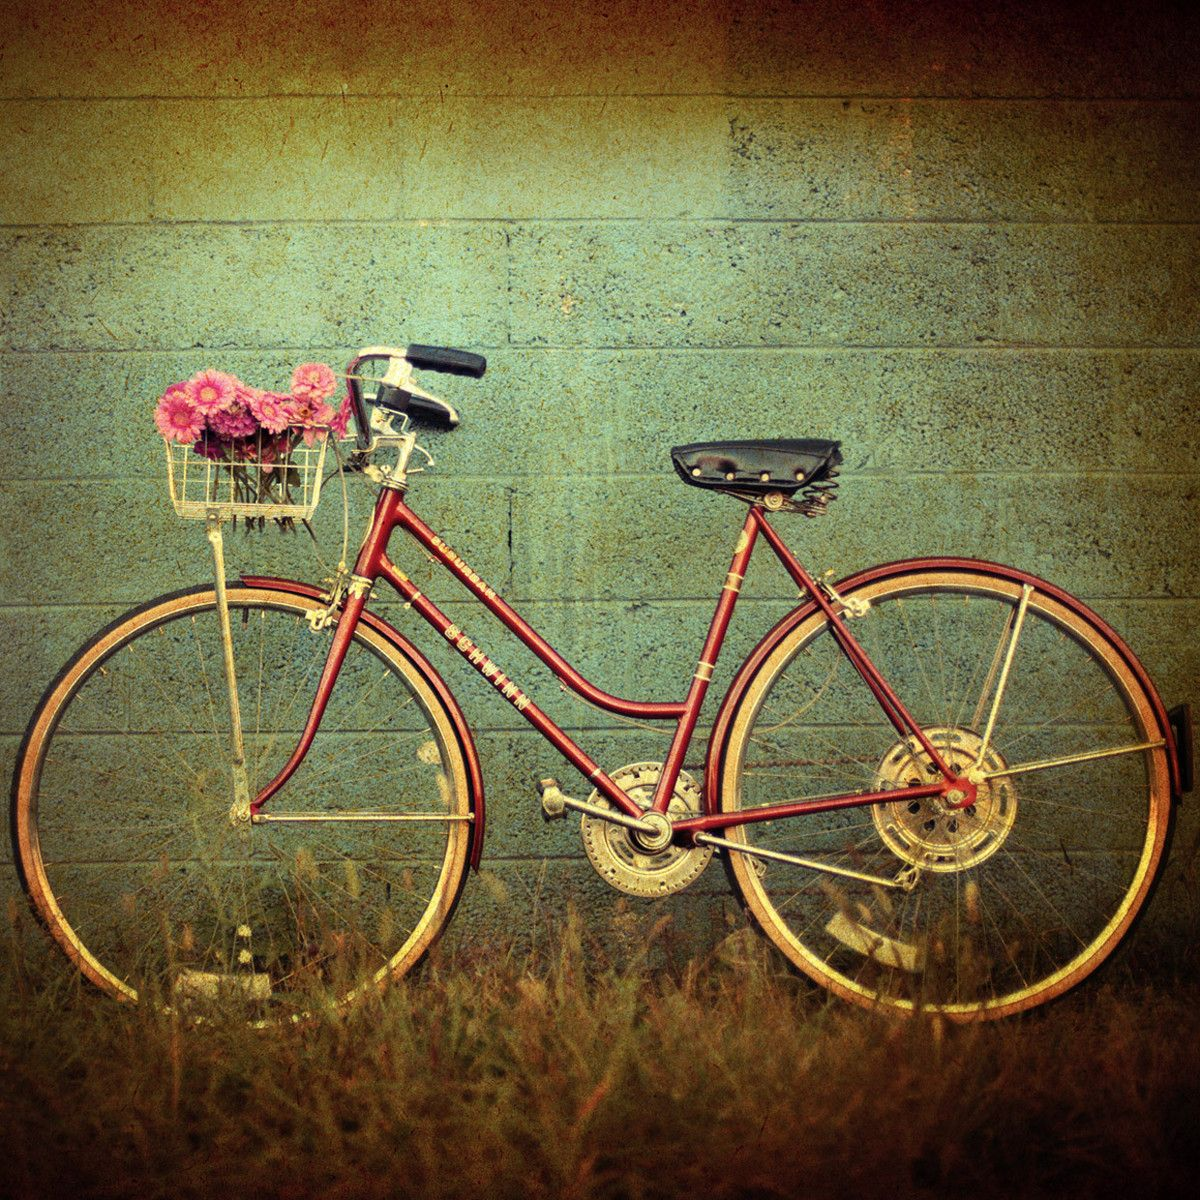 Love this print.  Vintage bikes and the photography style.  Swoon!